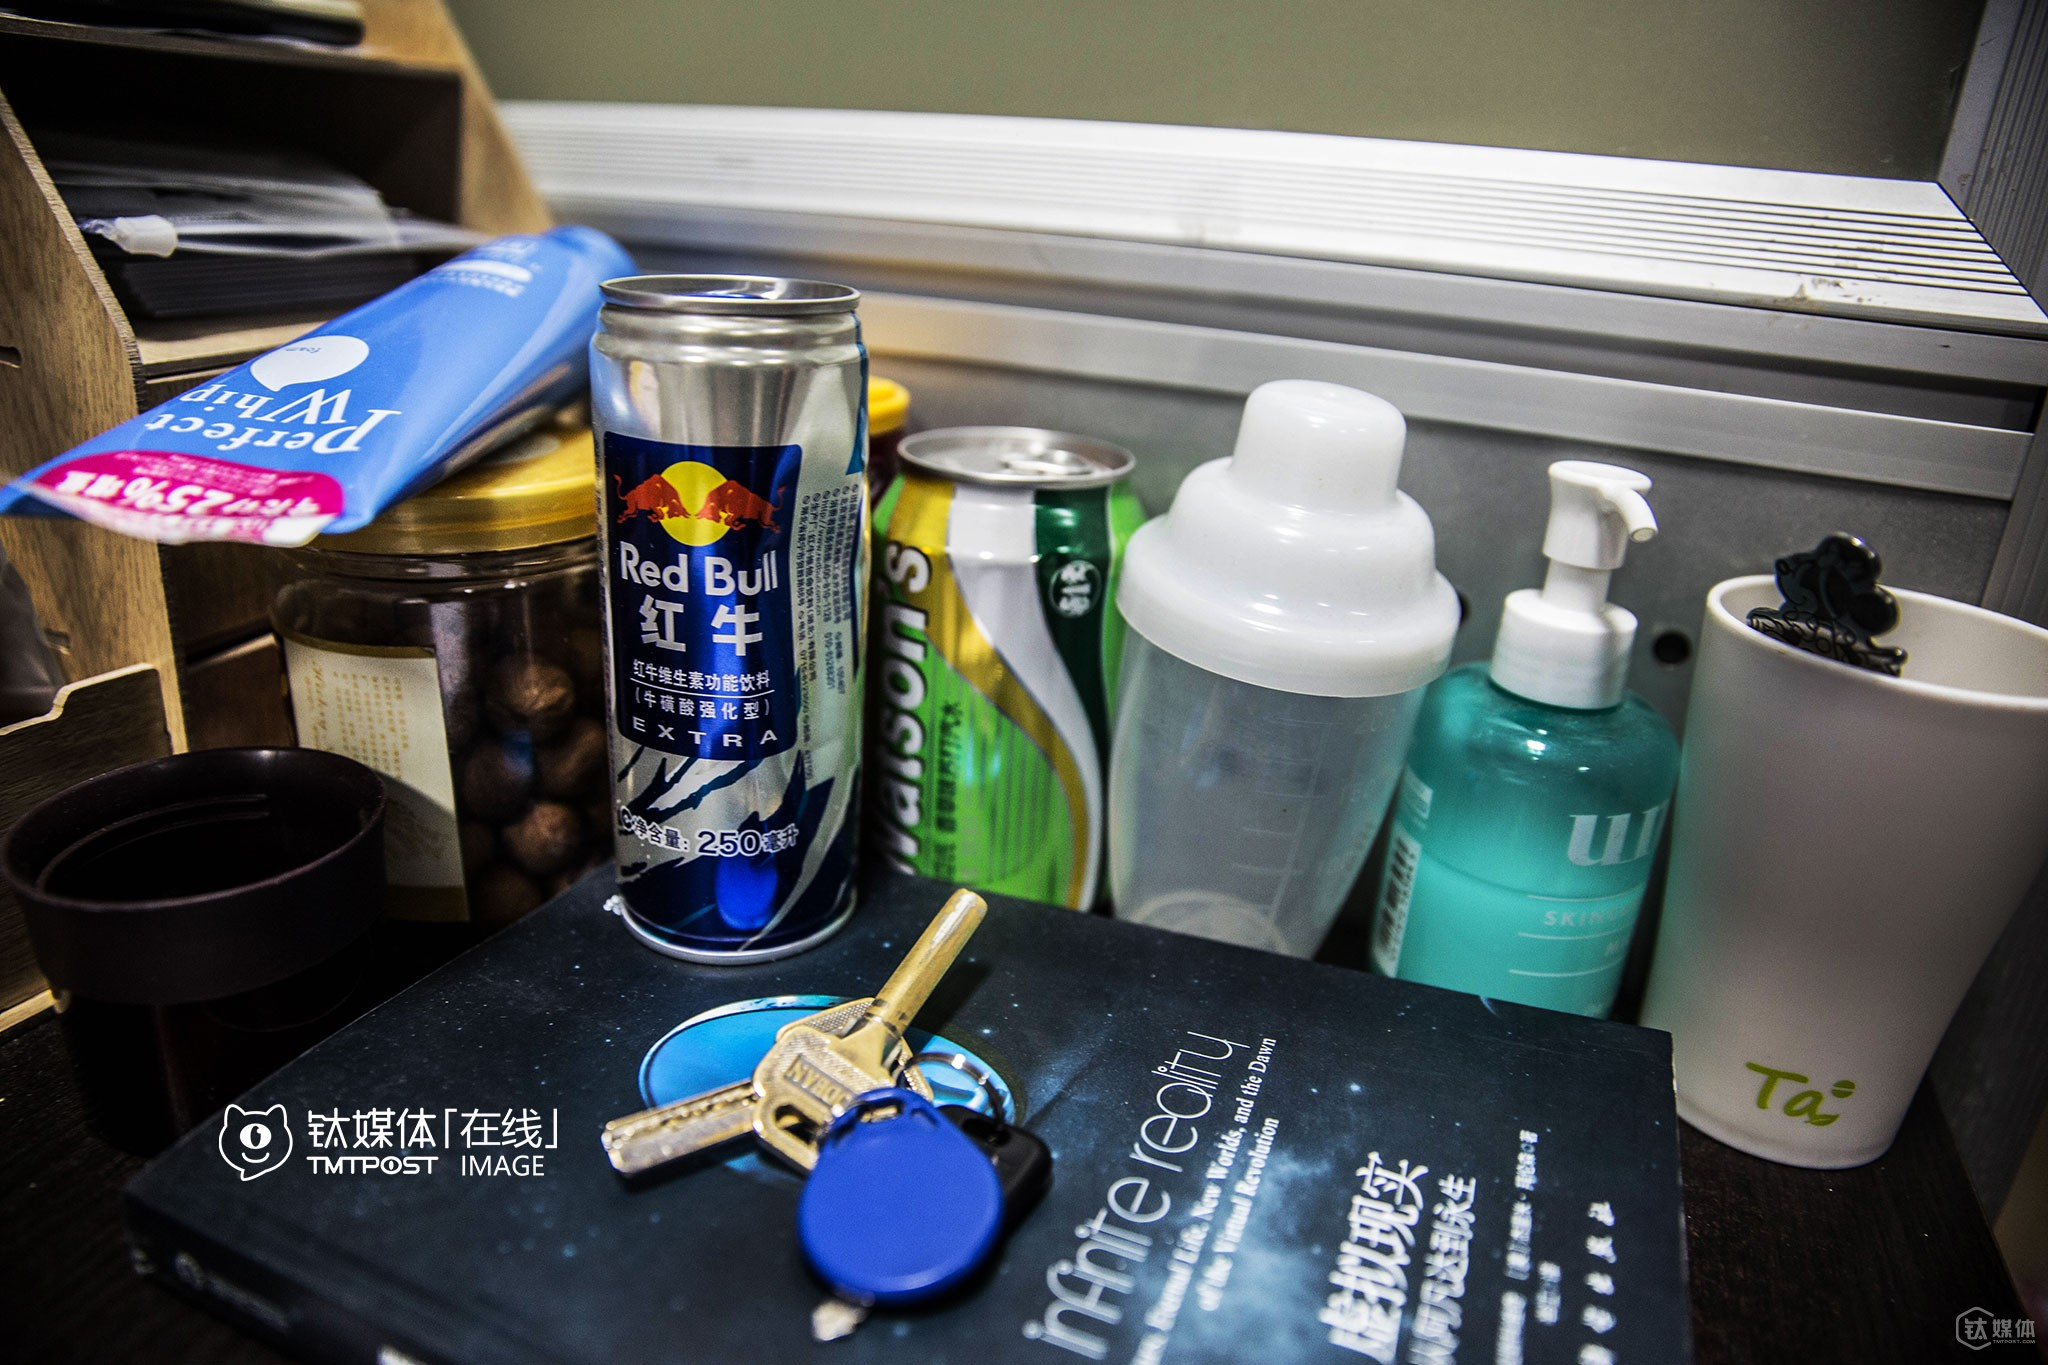 Since his team changes a lot, working overtime is quite common recently. To refresh themselves, they prepared RedBull and face cleanser.